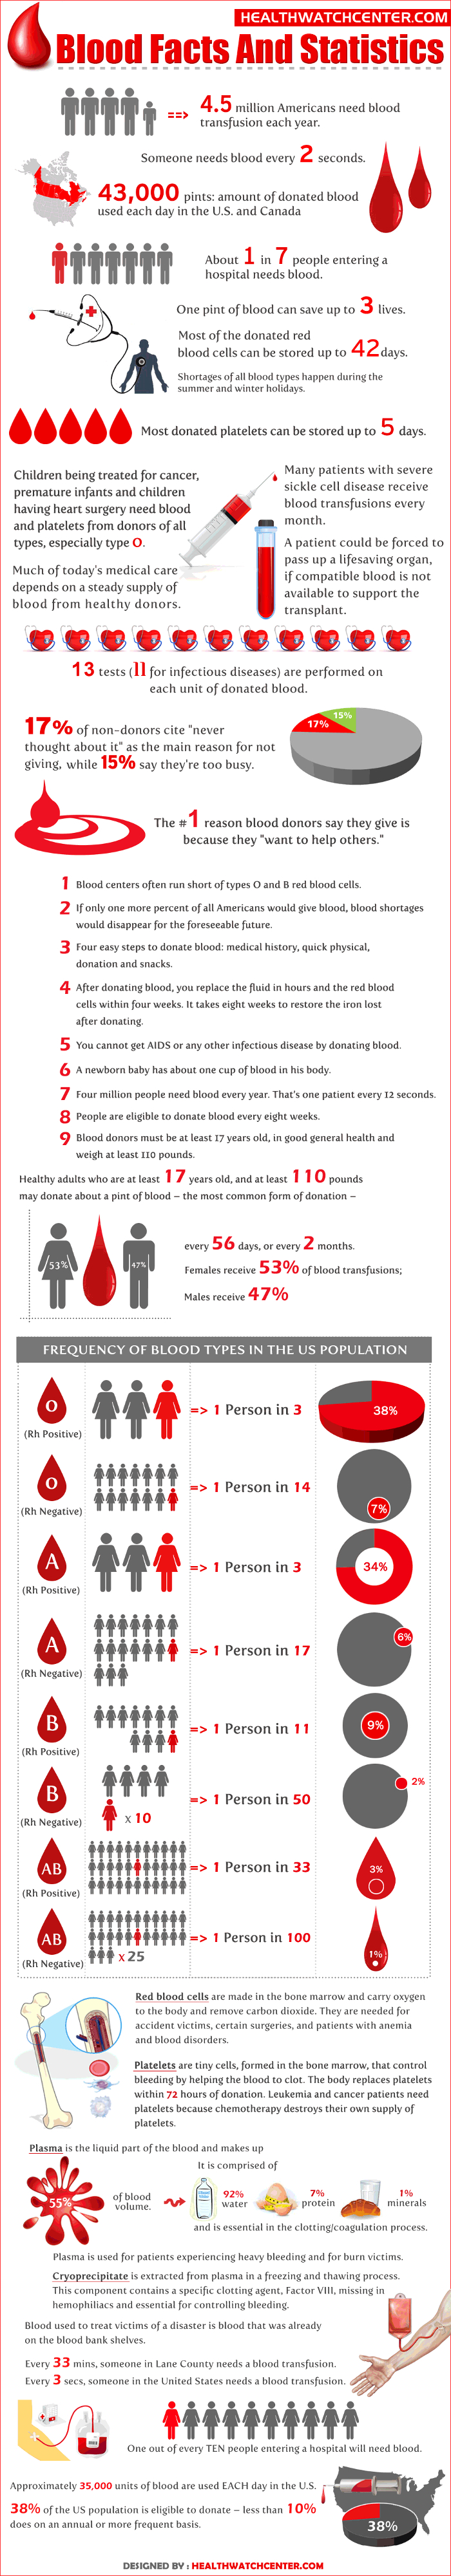 Facts About Donating Blood